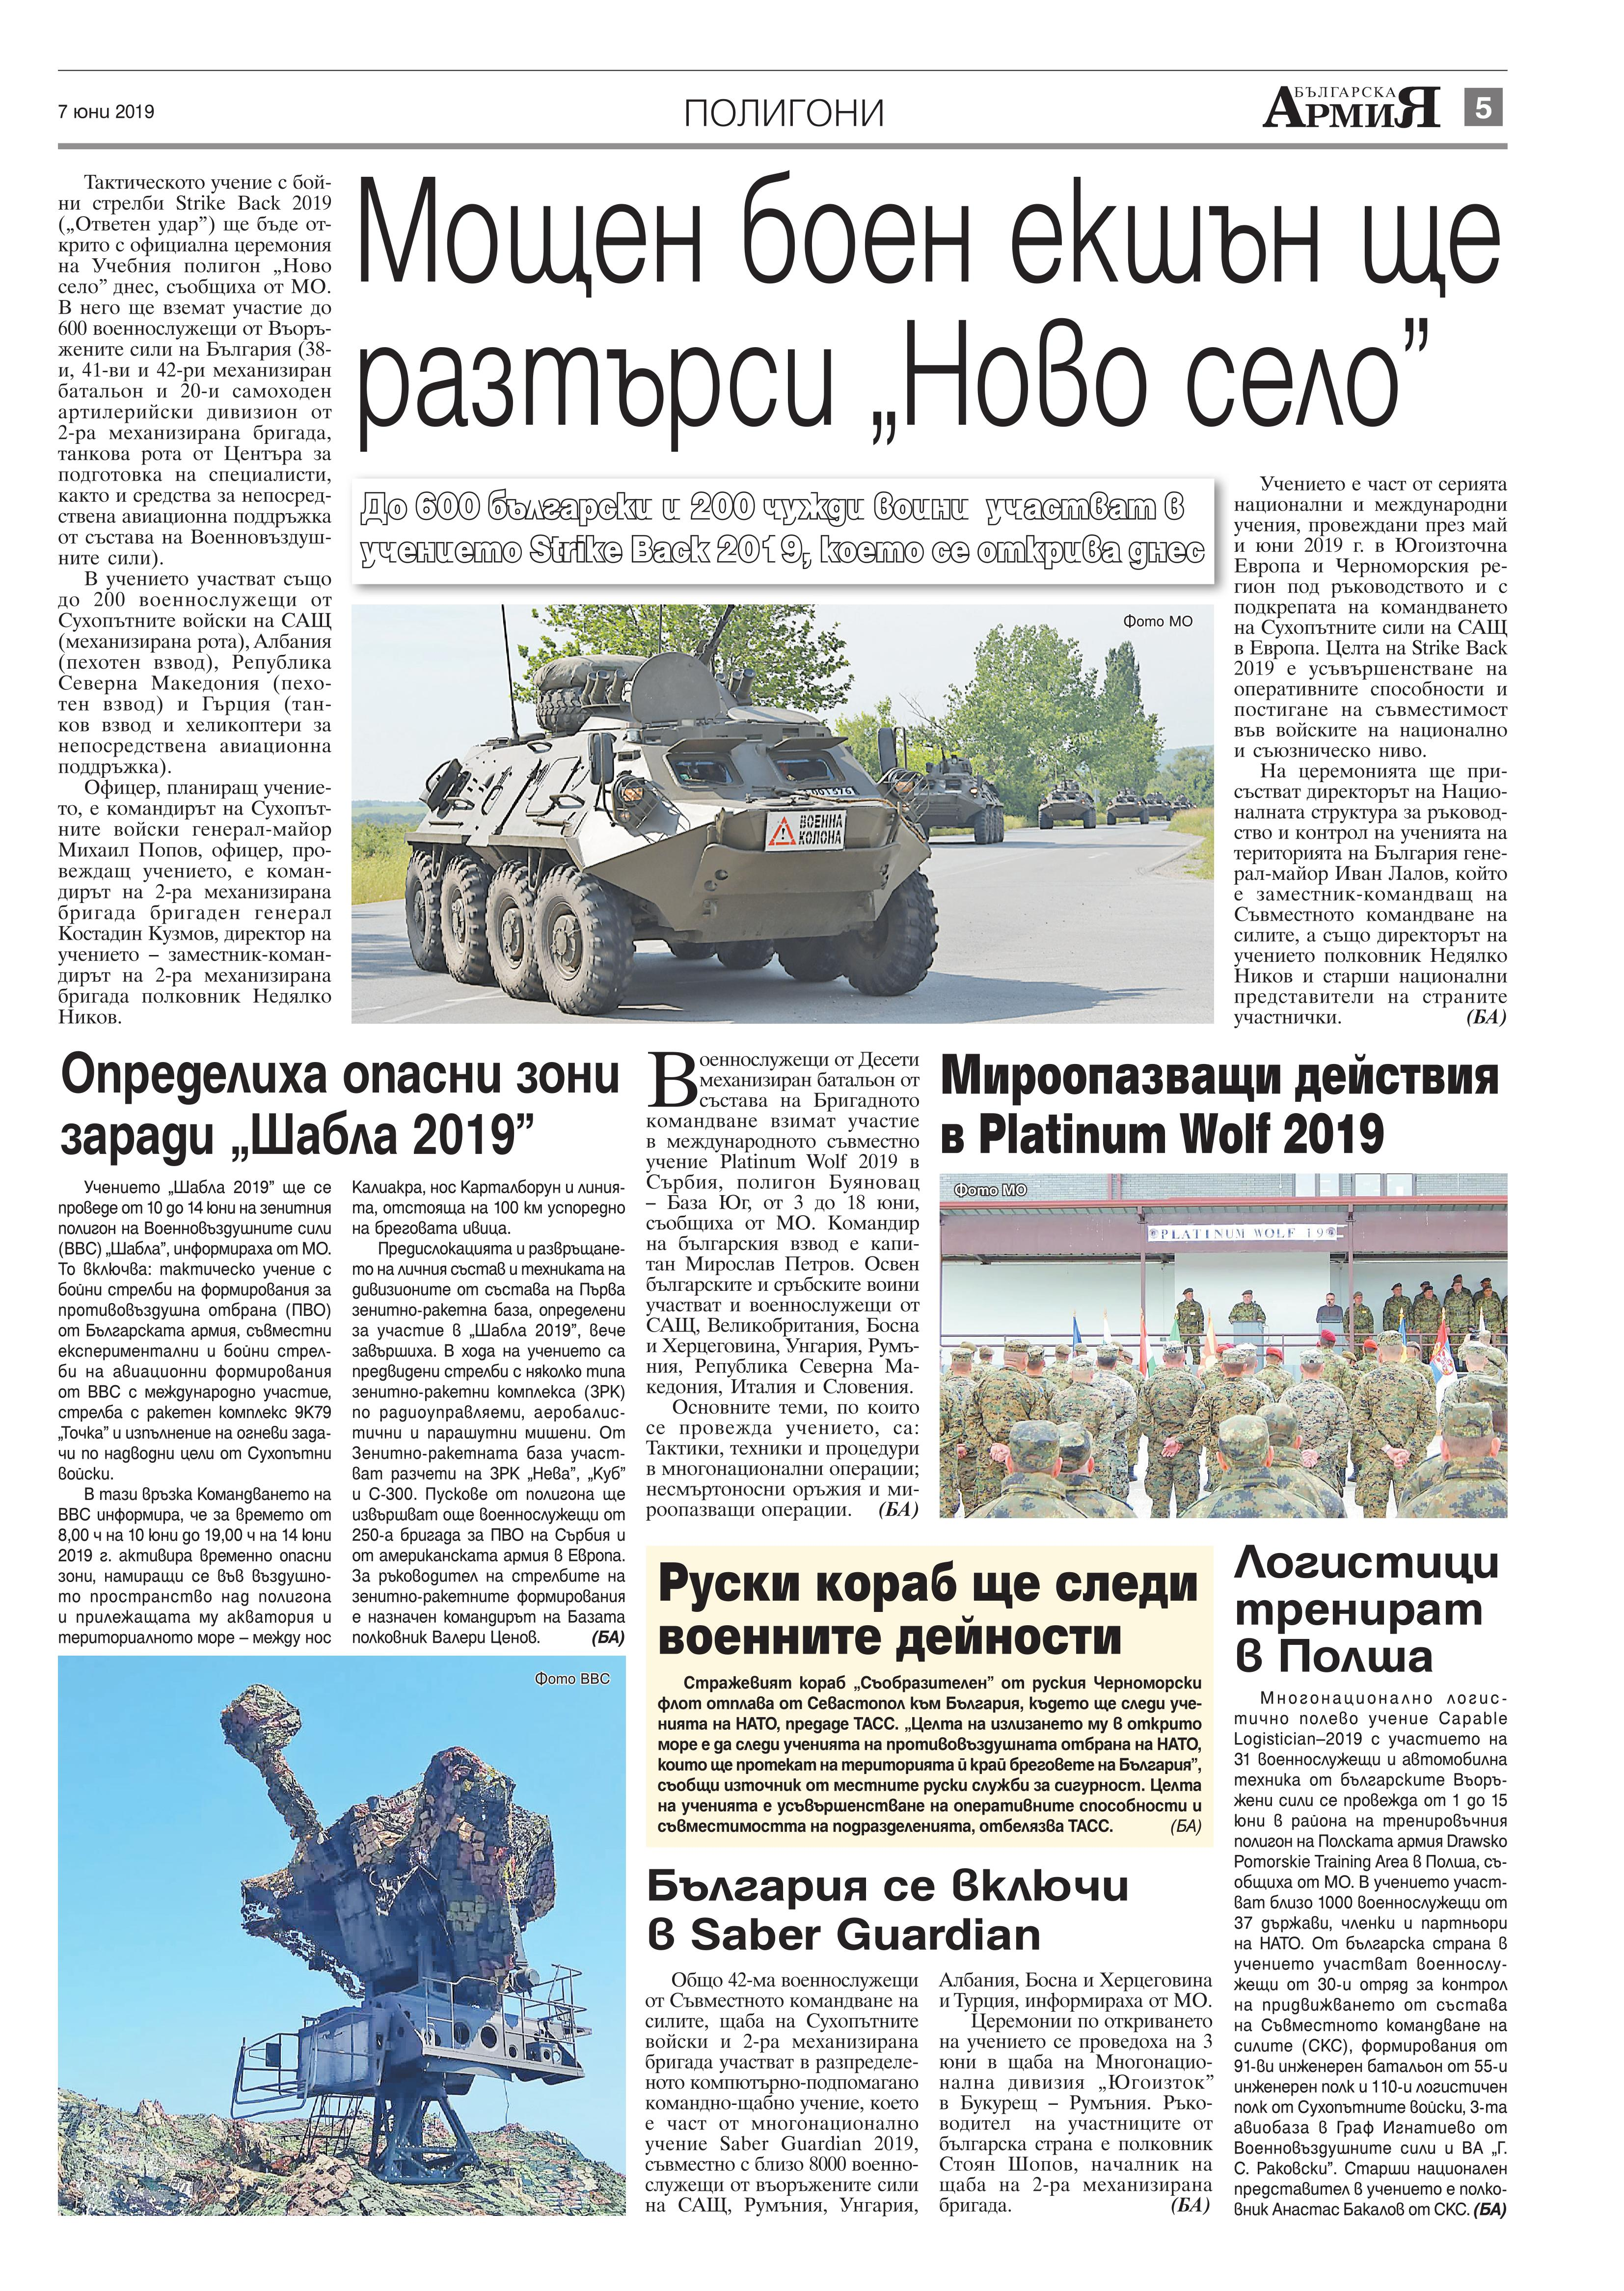 https://armymedia.bg/wp-content/uploads/2015/06/05.page1_-94.jpg